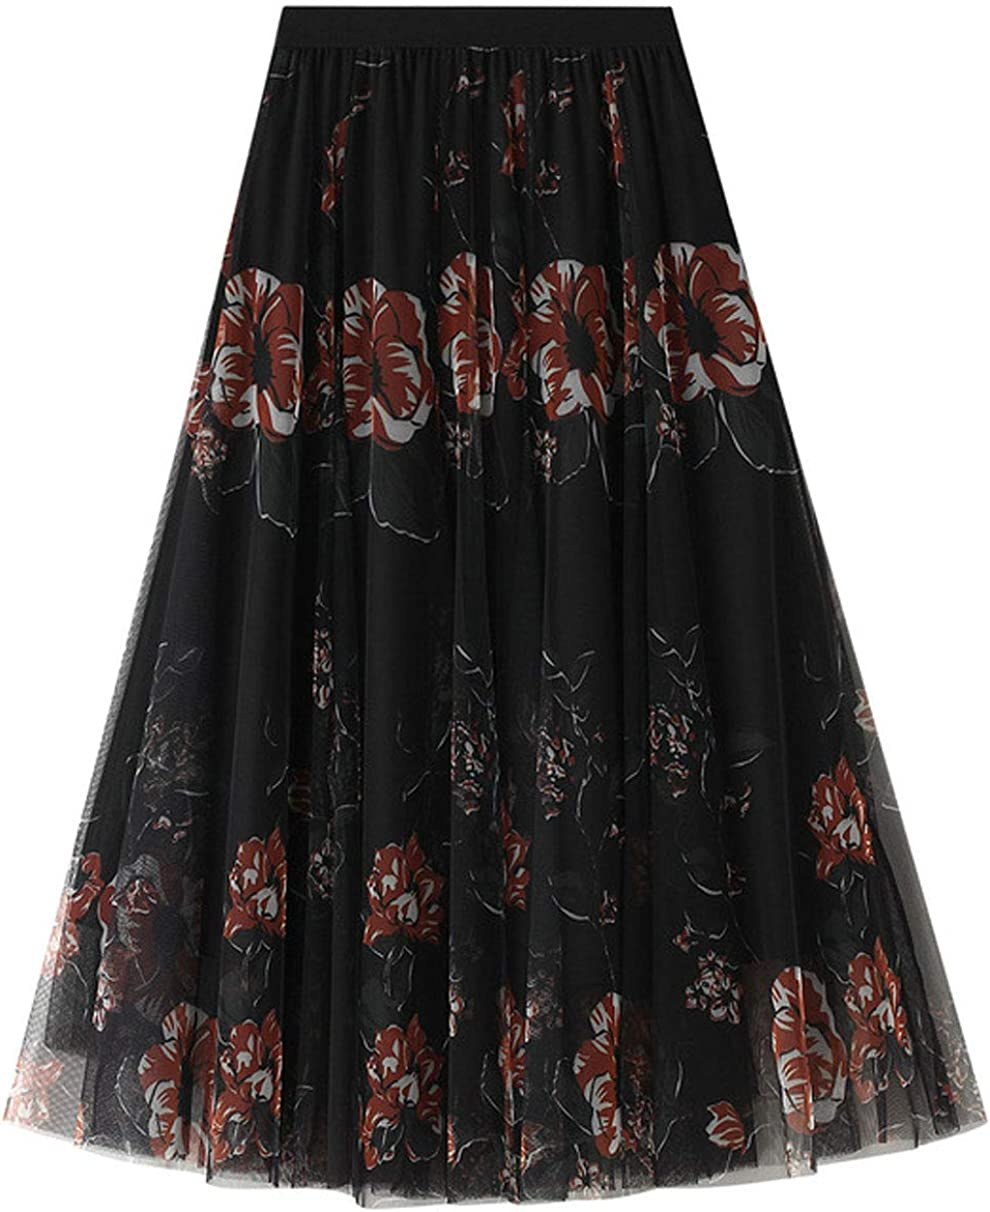 CHARTOU Women's Floral Sheer Mesh Layered Tulle Pleated Swing A-Line Long Skirt